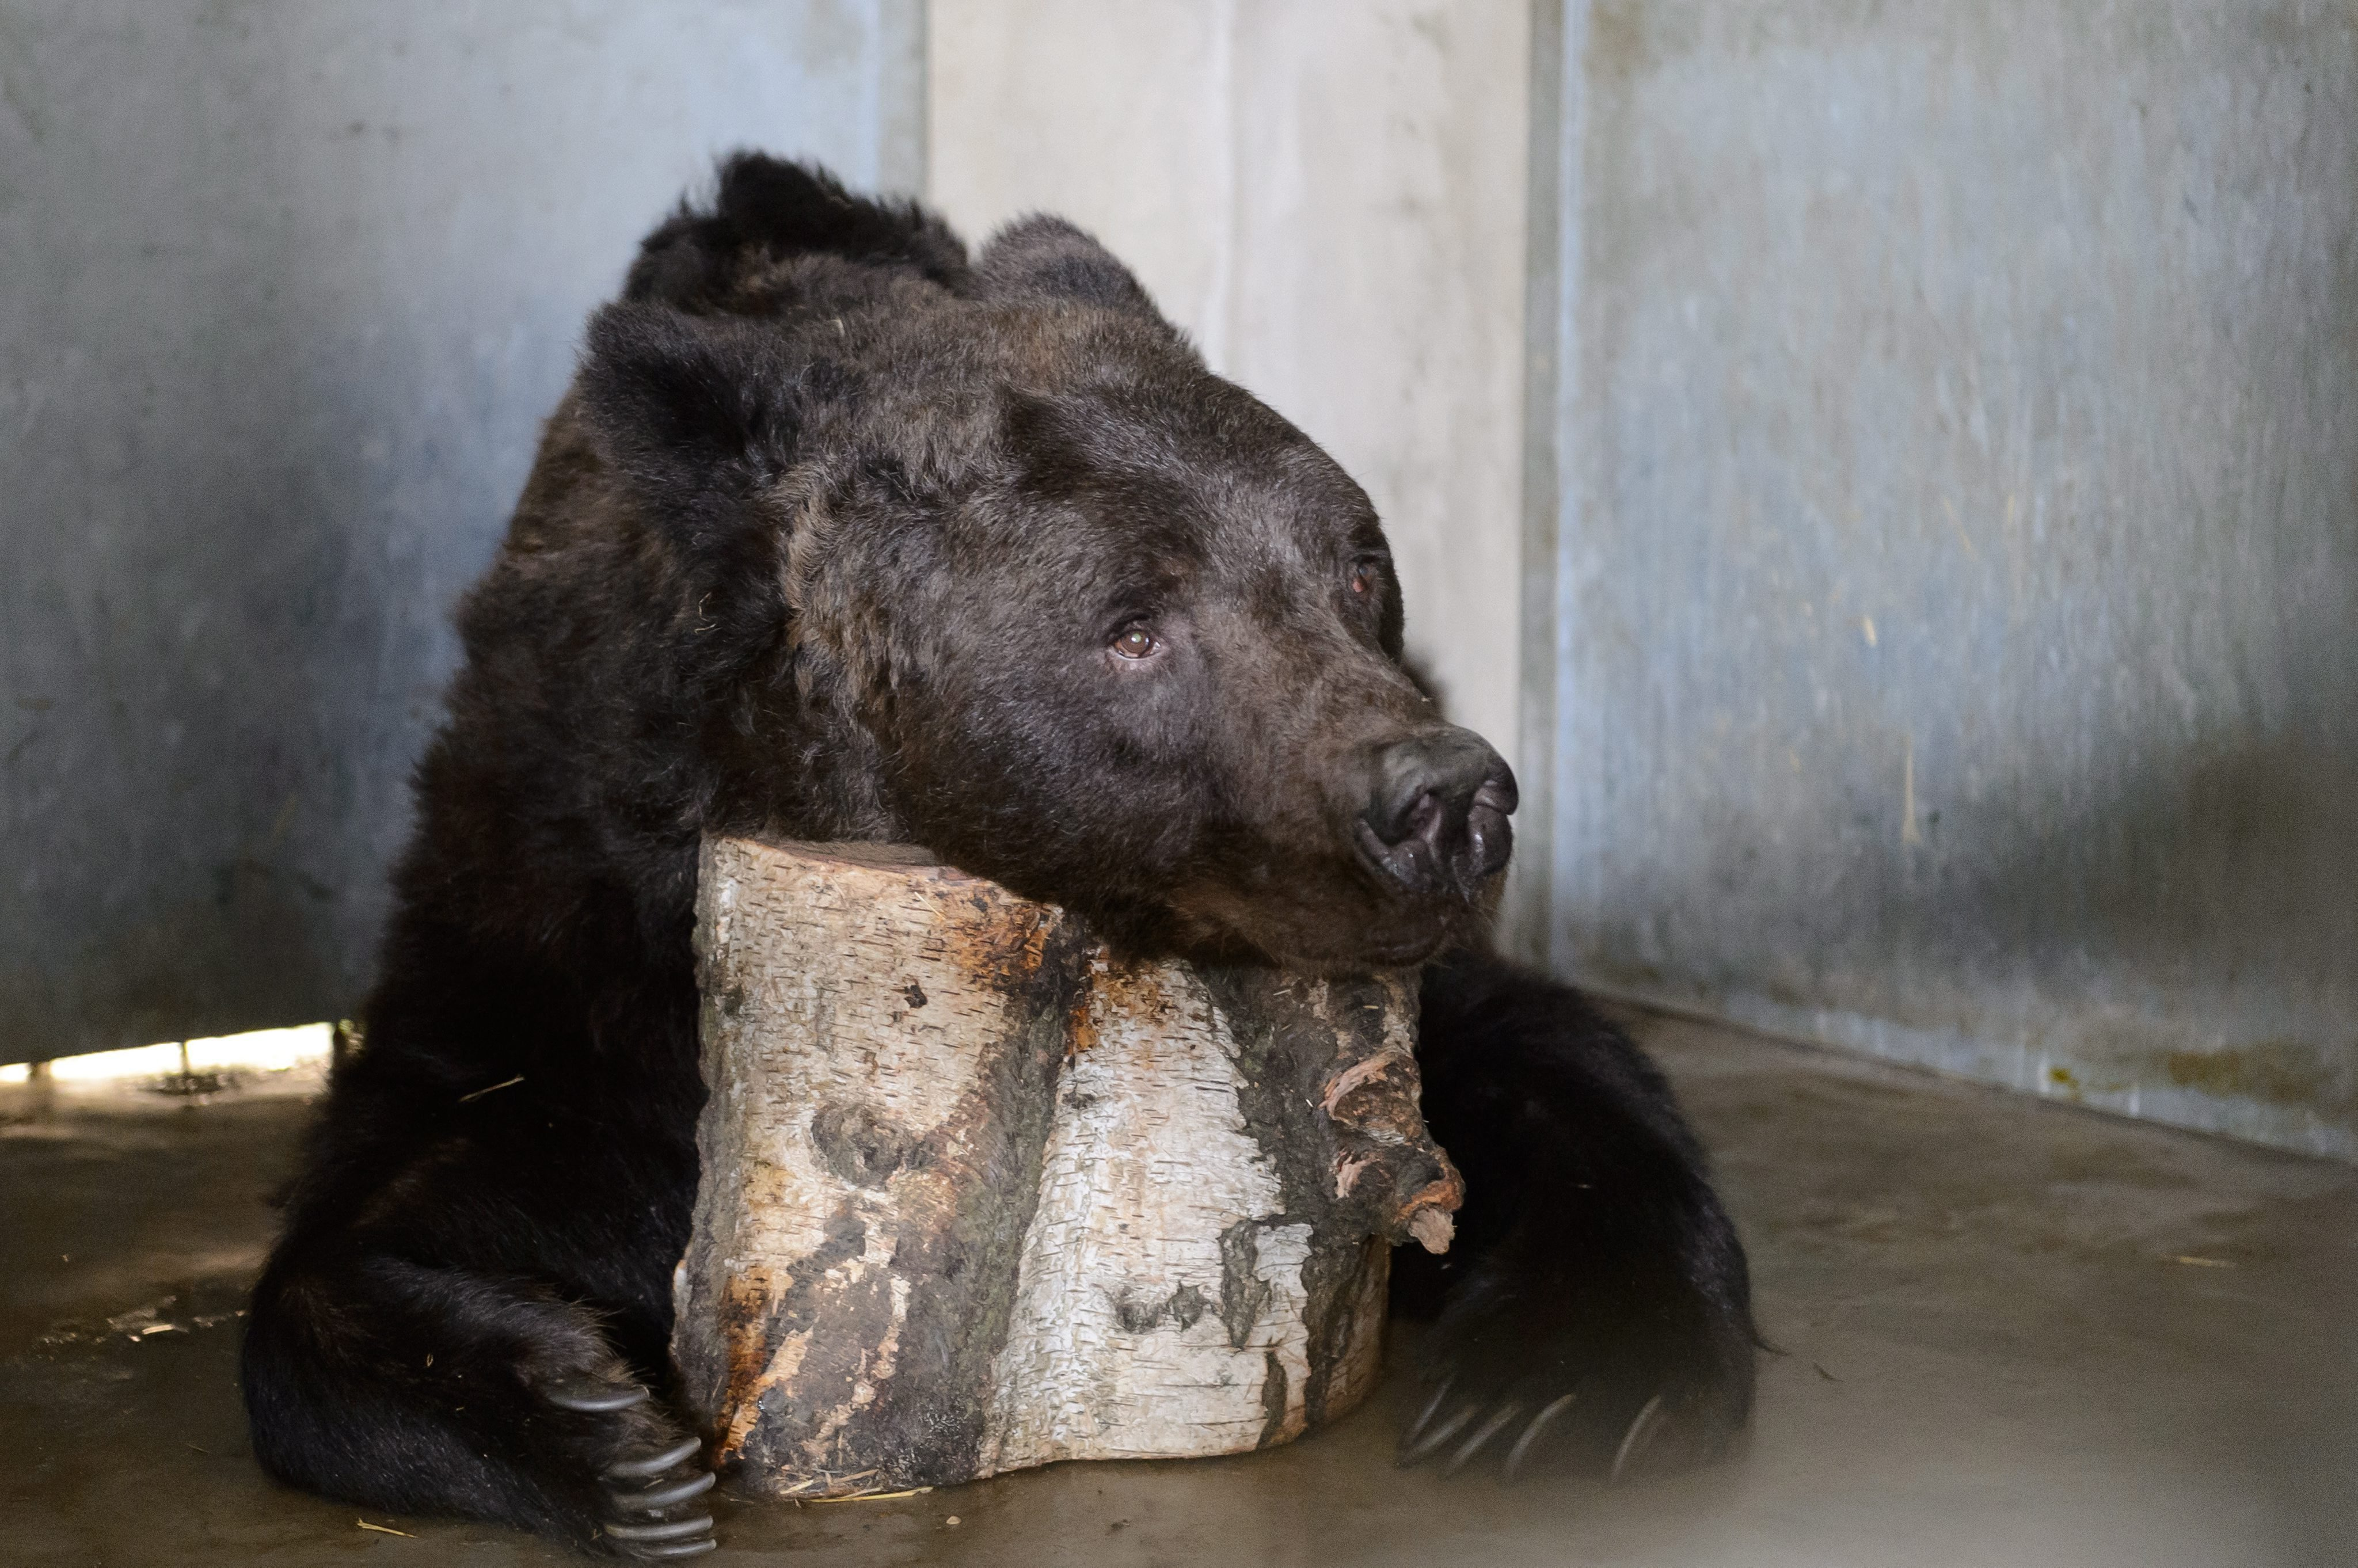 Misha, a brown bear waits for his first dental treatment in his enclosure at the Poznan Zoo in Poznan, Poland on Sept. 5, 2014.